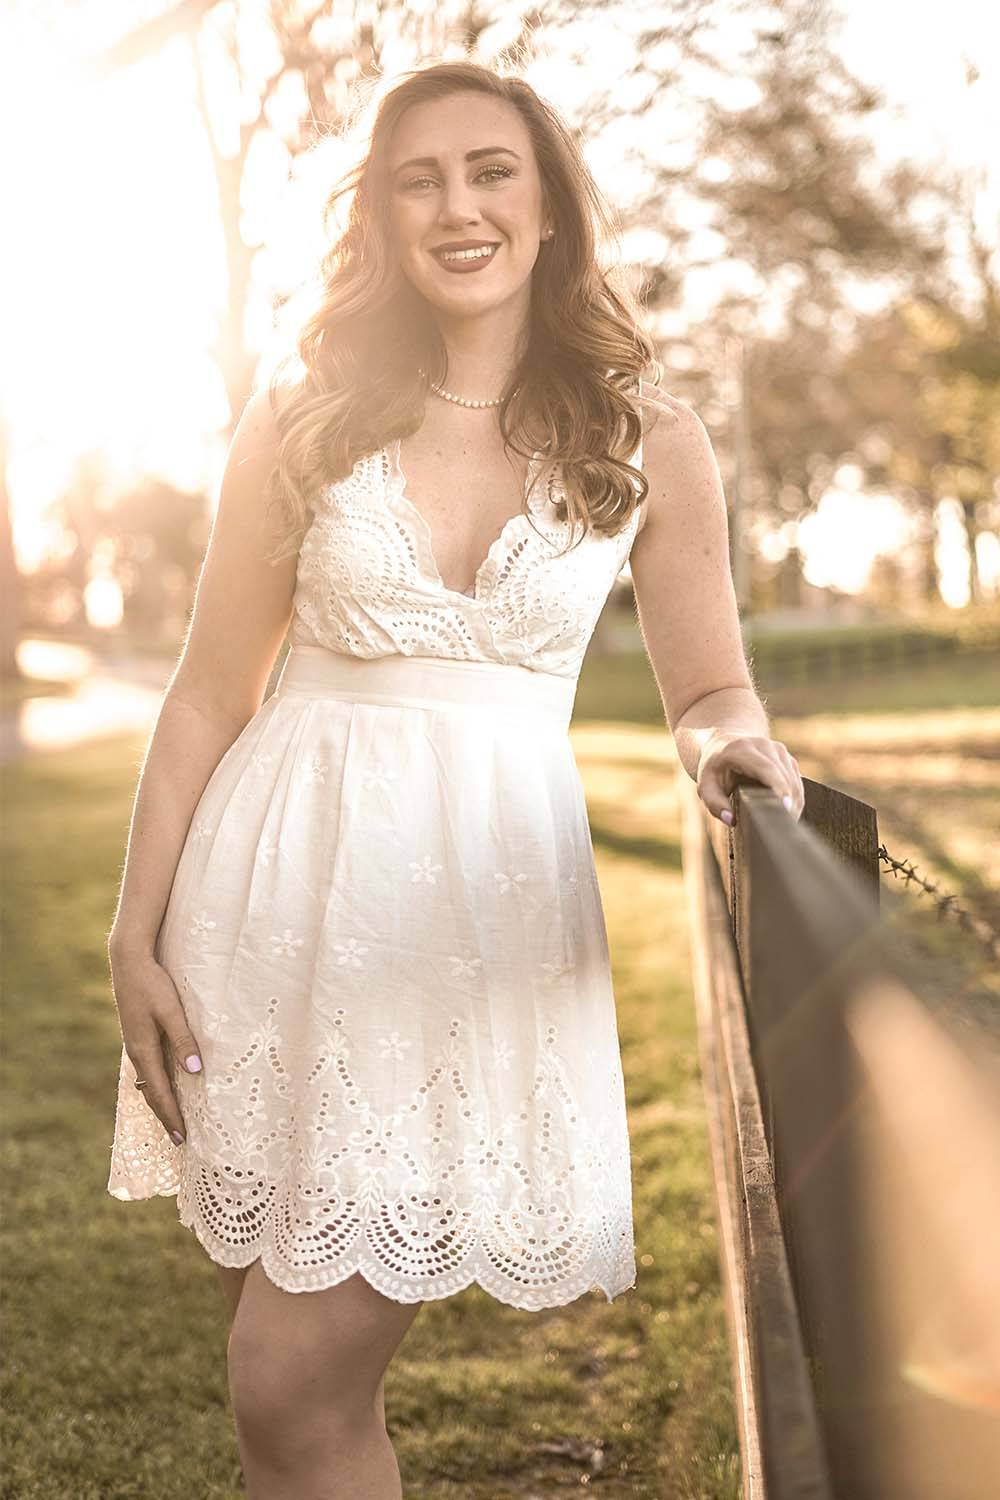 dress look younger naturally girly